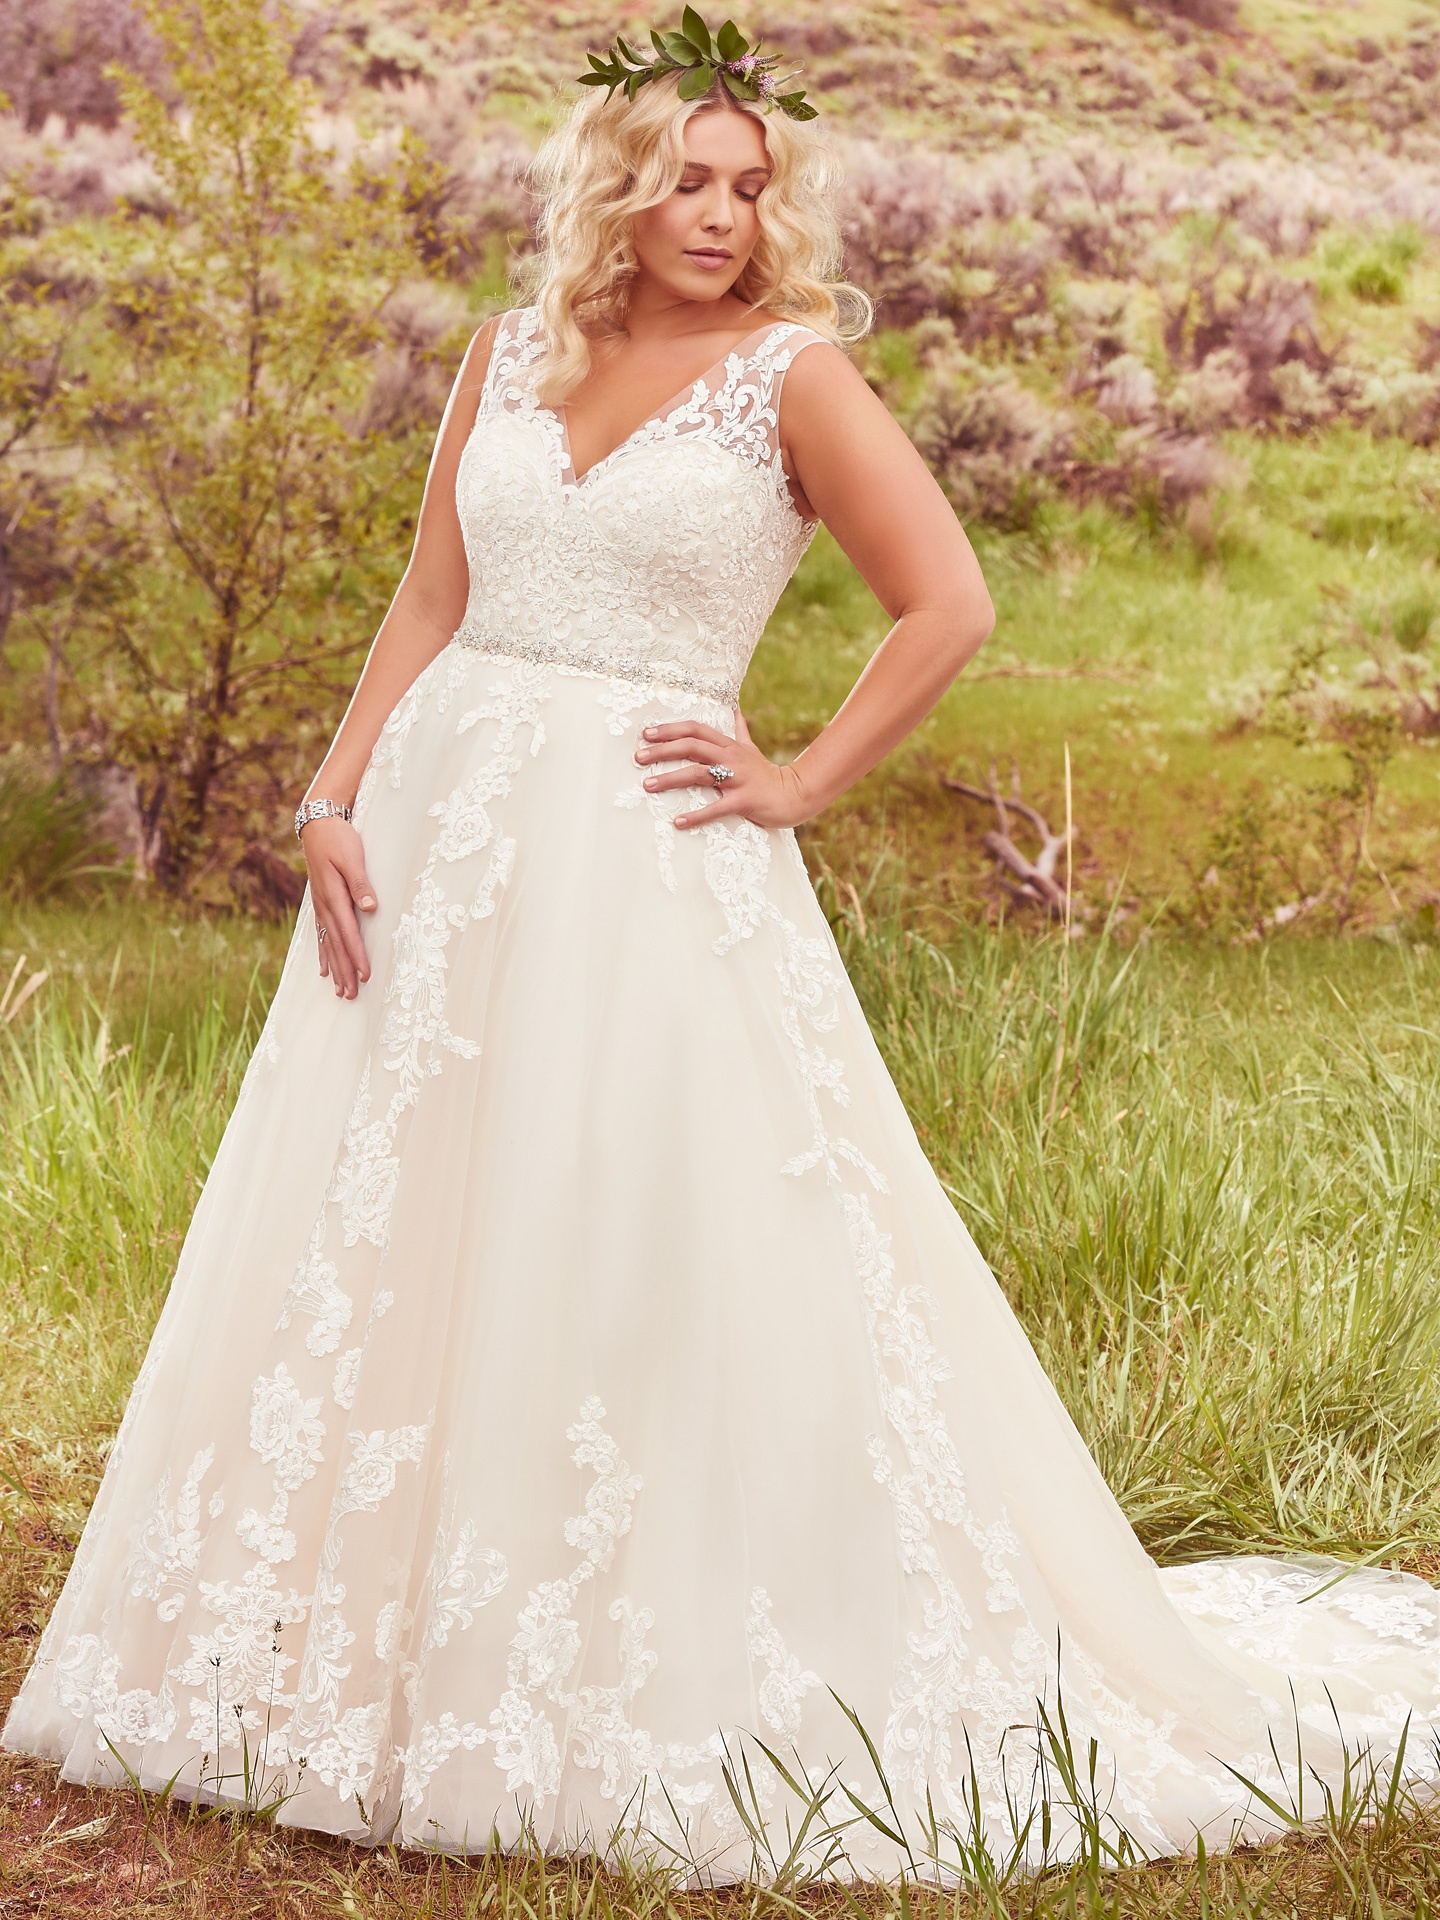 Flattering Wedding Dresses for Curvy Brides - Sybil by Maggie Sottero